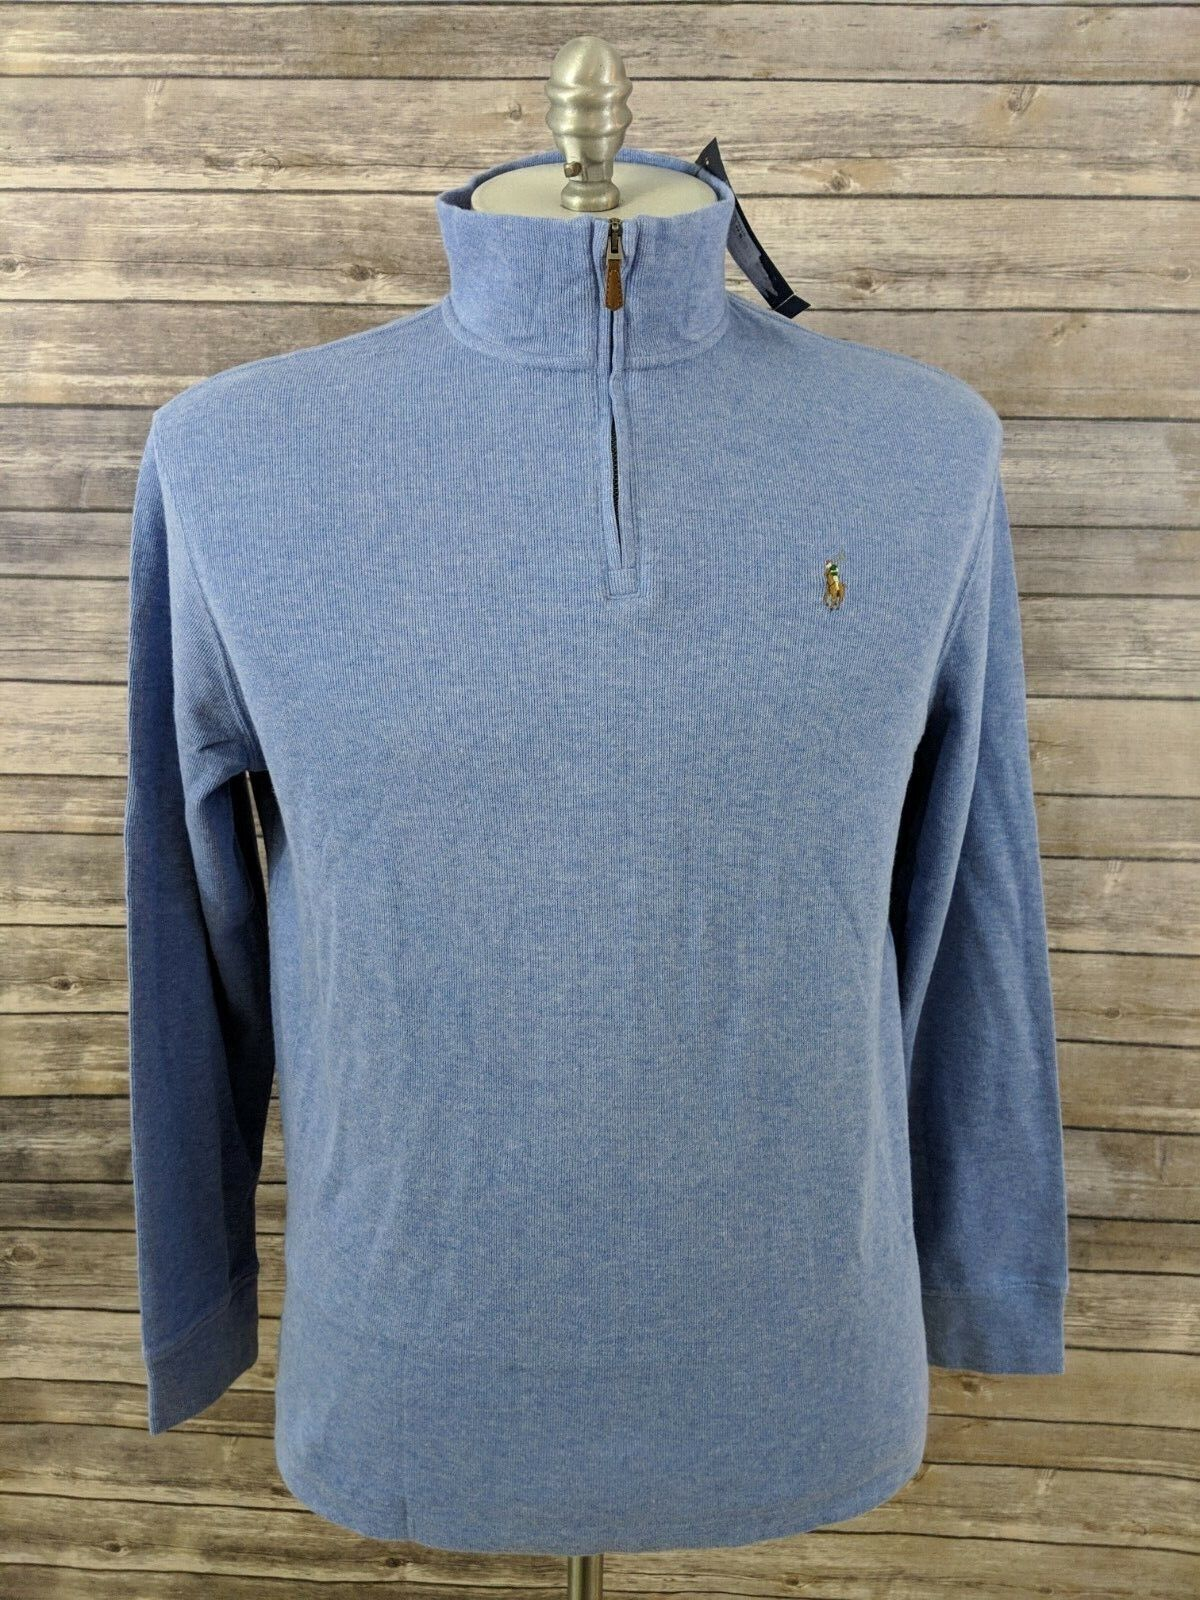 New Polo Ralph Lauren Estate Rib Mens Sweater 1 2 Zip bluee Size Large MSRP